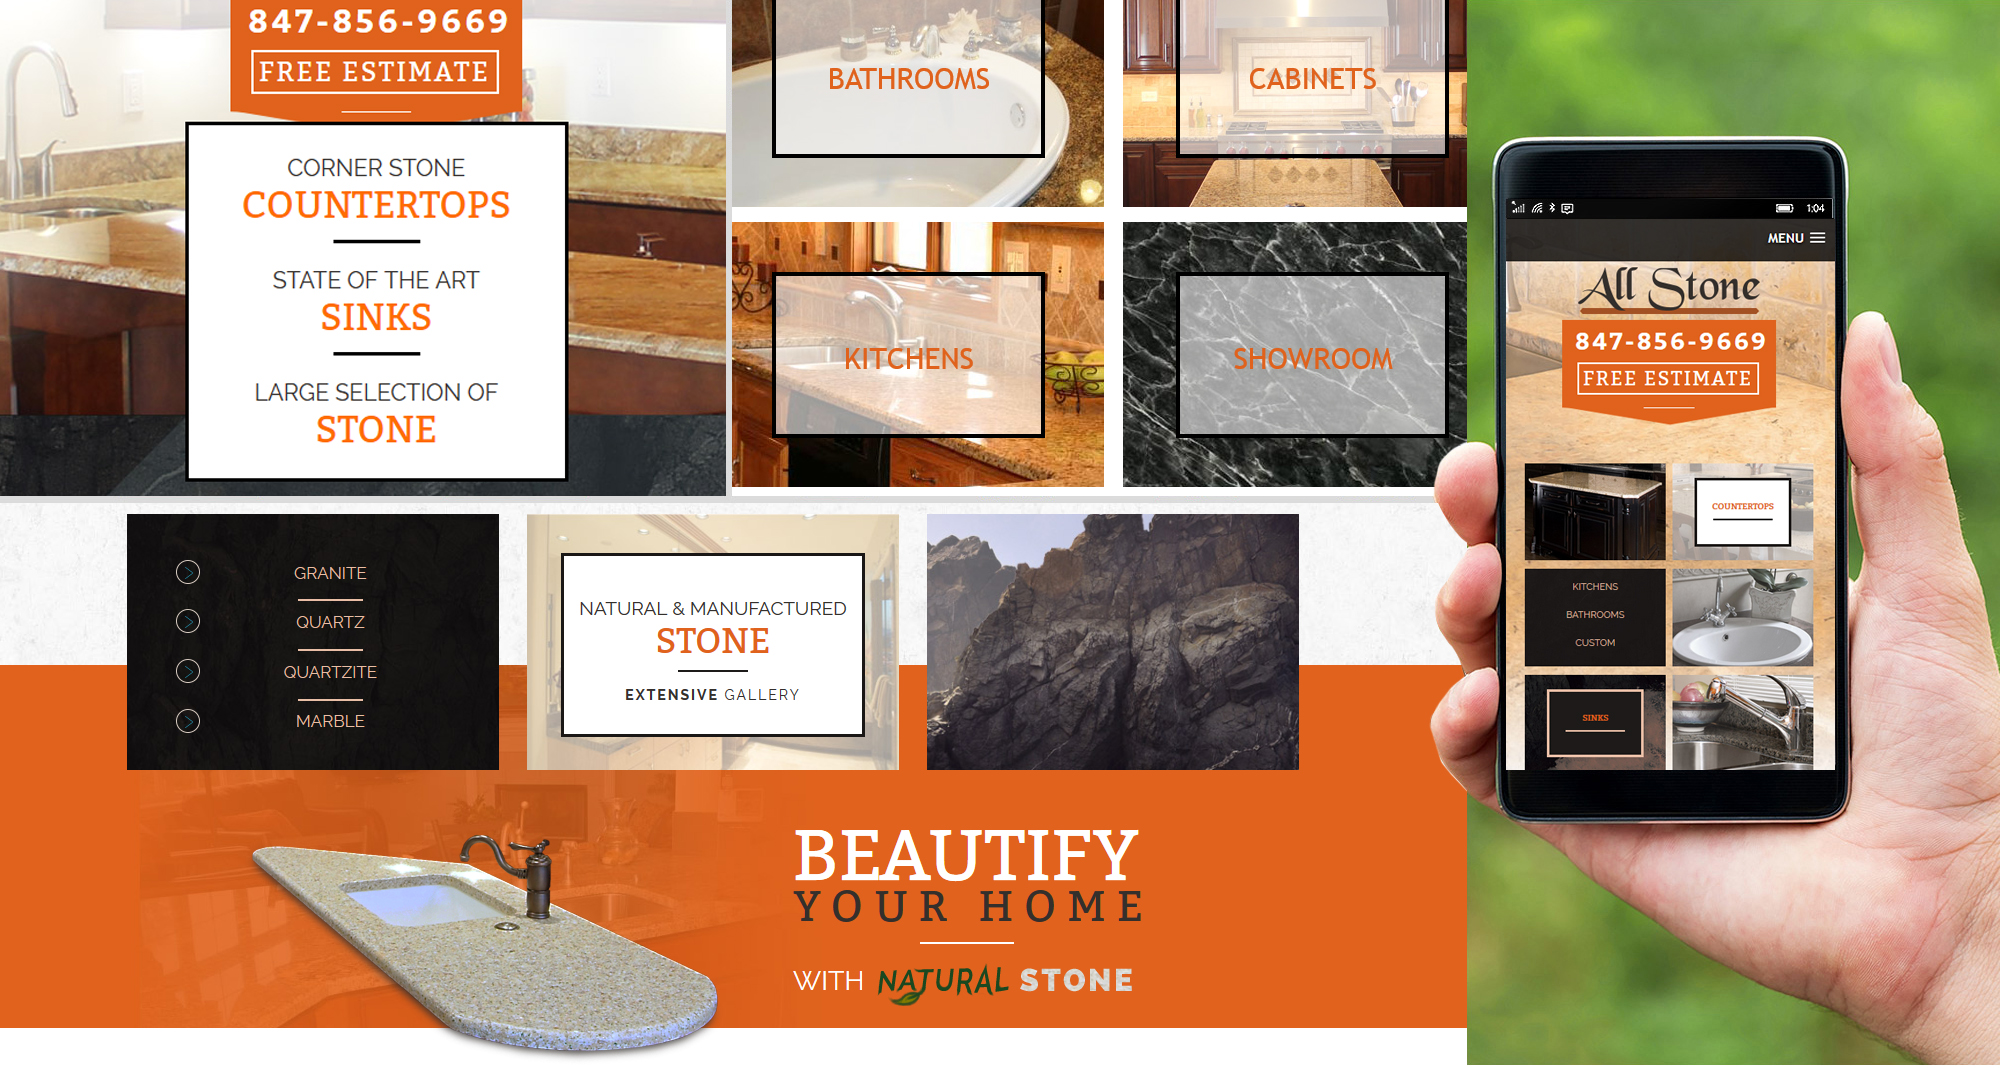 Milwaukee web marketing for All Stone